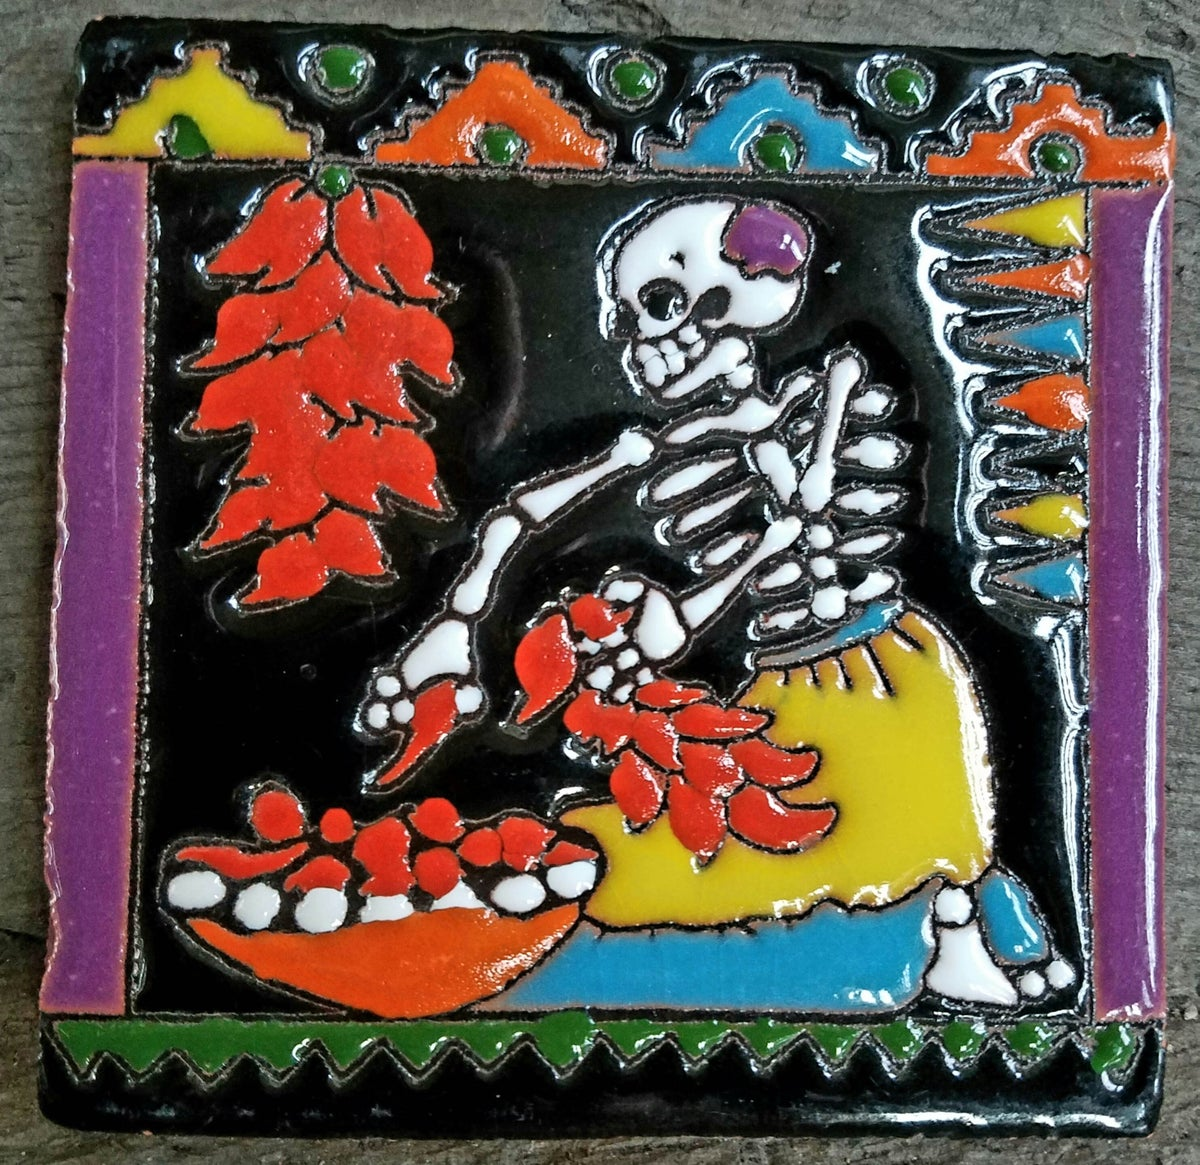 Image of New Mexico Chili Coaster Tile